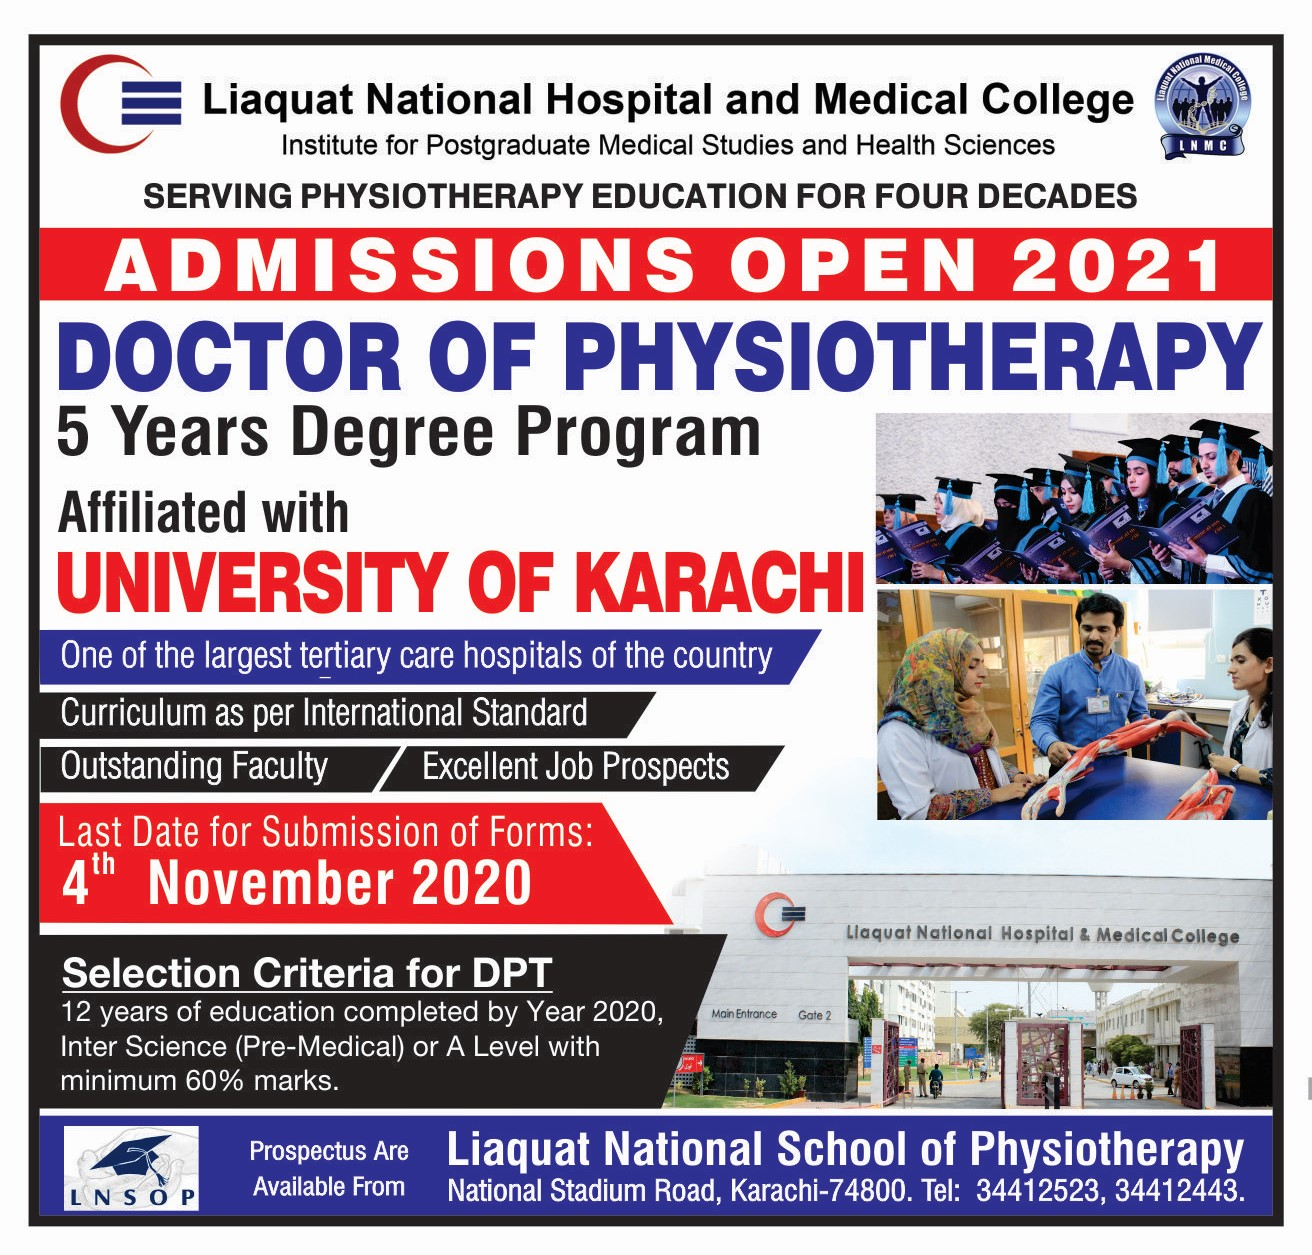 Admissions Open 2021 in Doctor of Physiotherapy